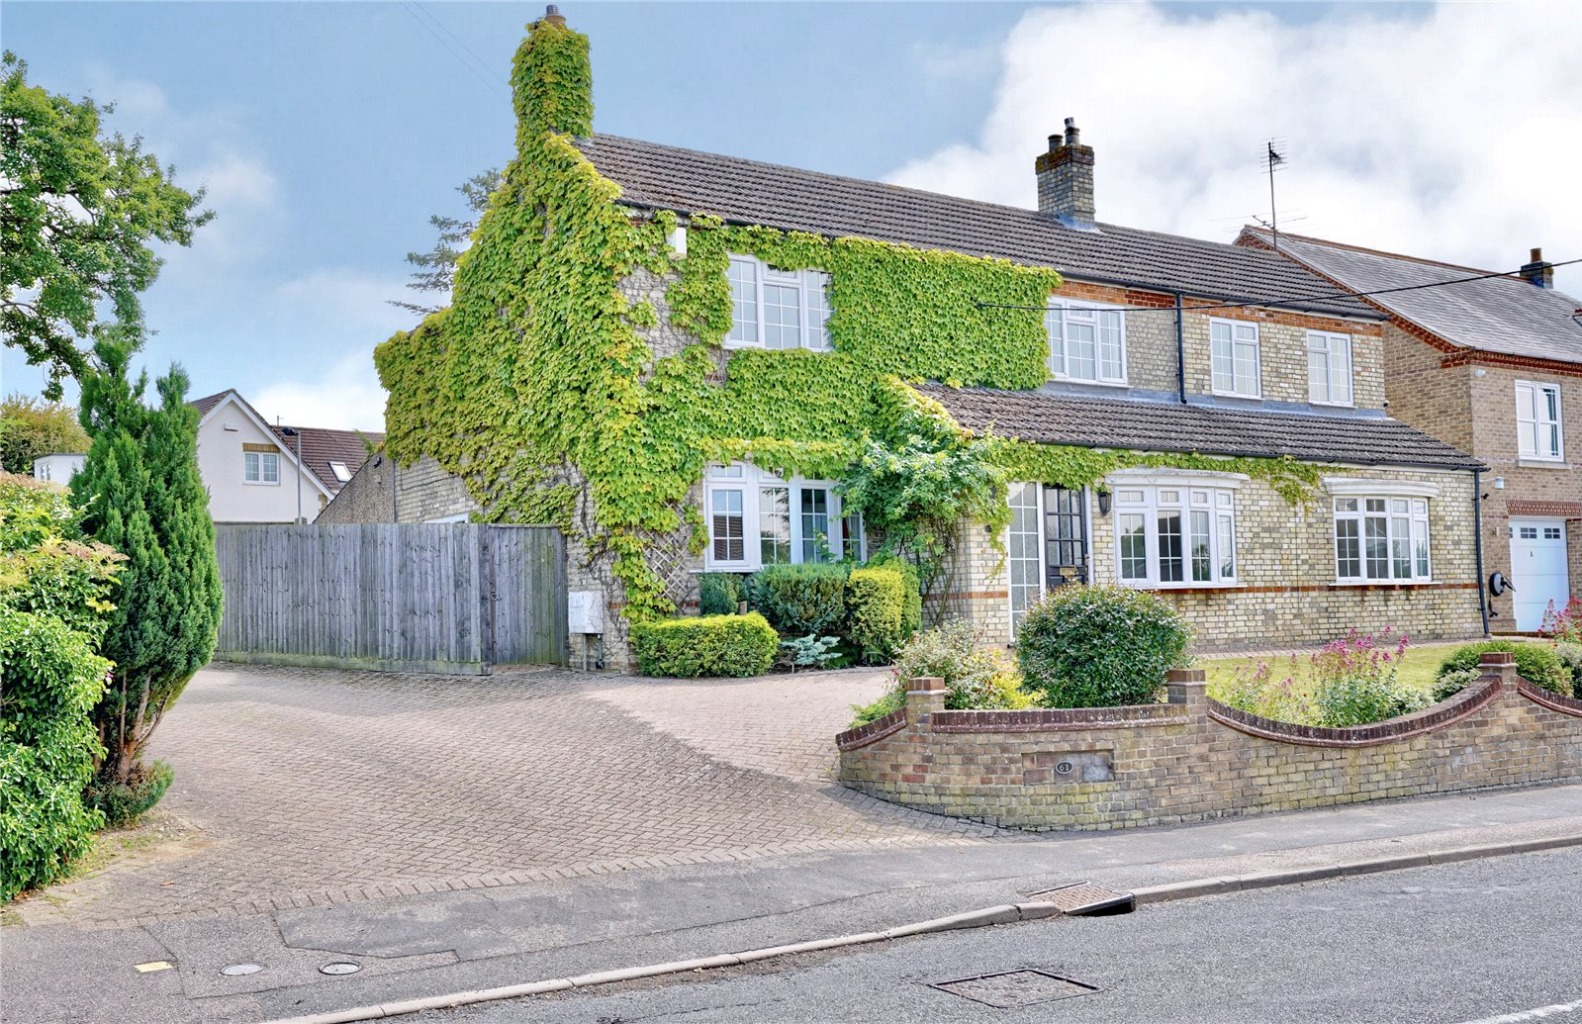 4 bed detached house for sale in High Street, St. Neots - Property Image 1